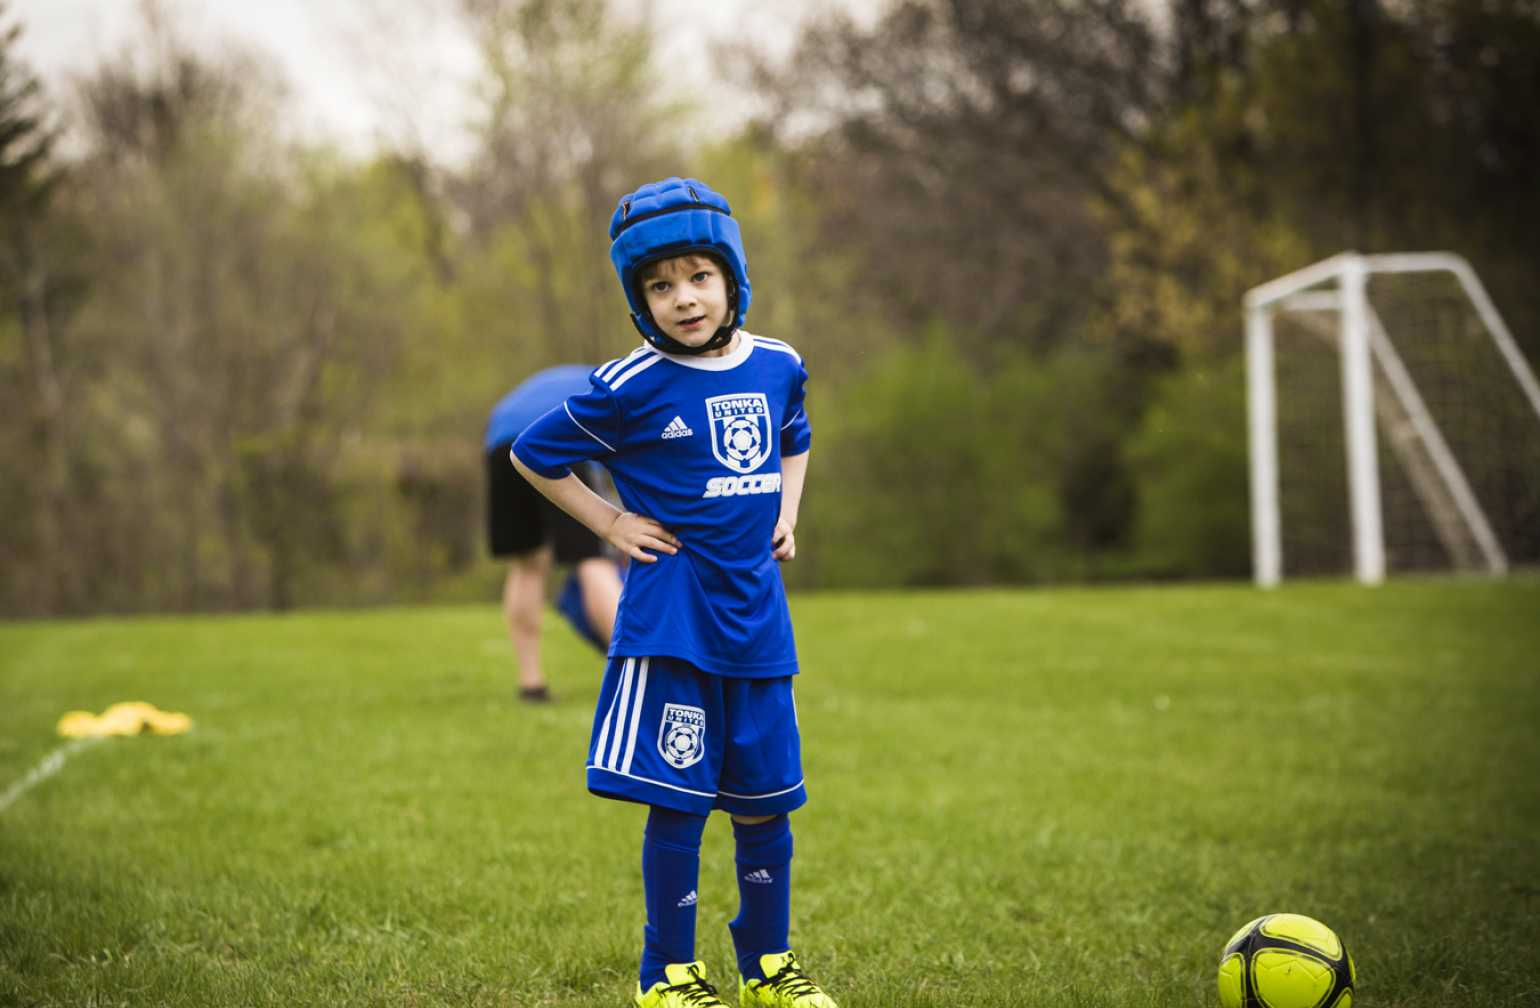 Gillette patient, Ezra, standing alone on field with soccer ball and goal